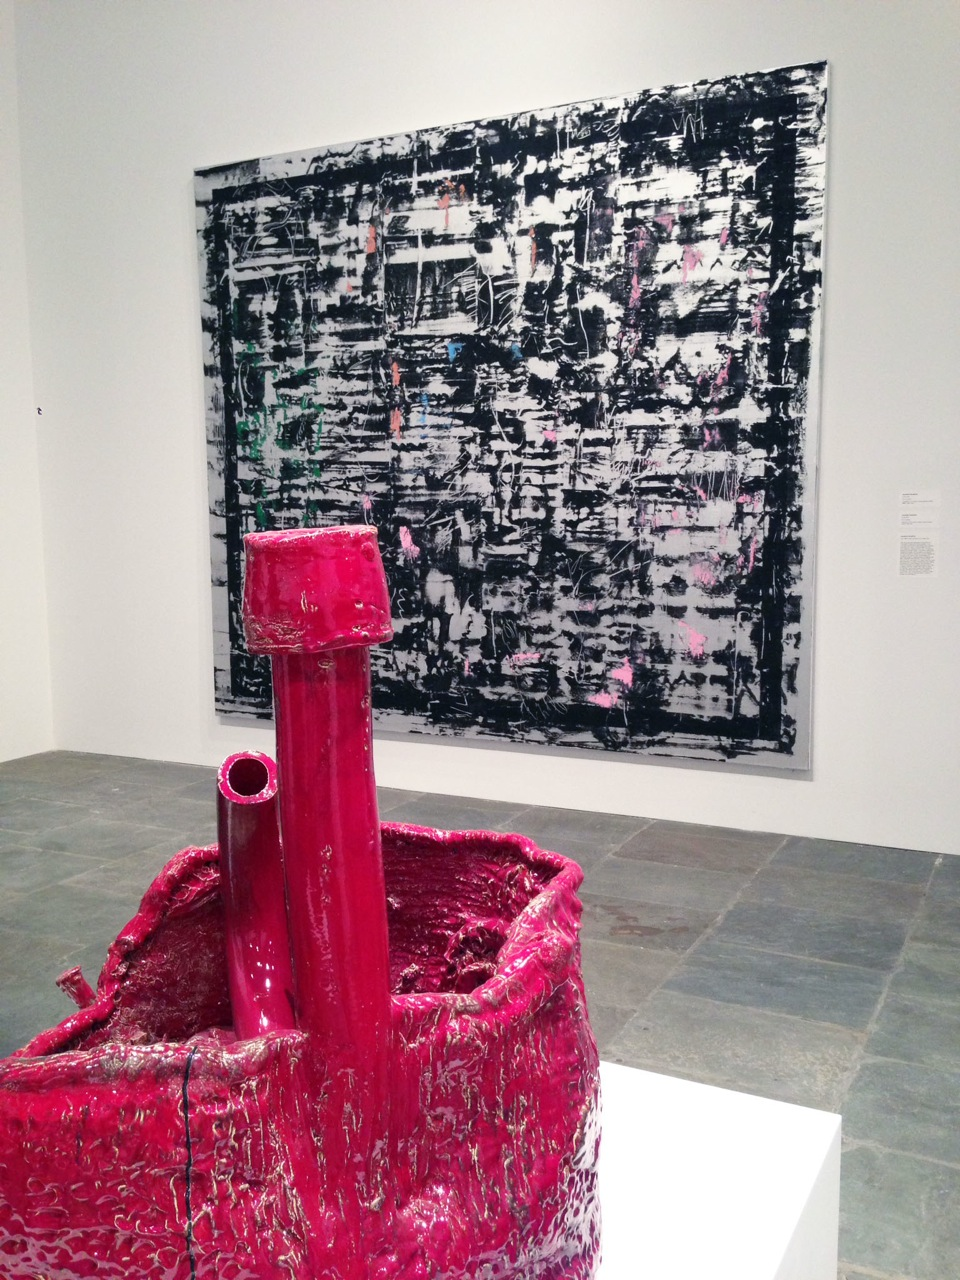 Sterling Ruby (foreground) and Jacqueline Humphries (background) (curated by Michelle Grabner)